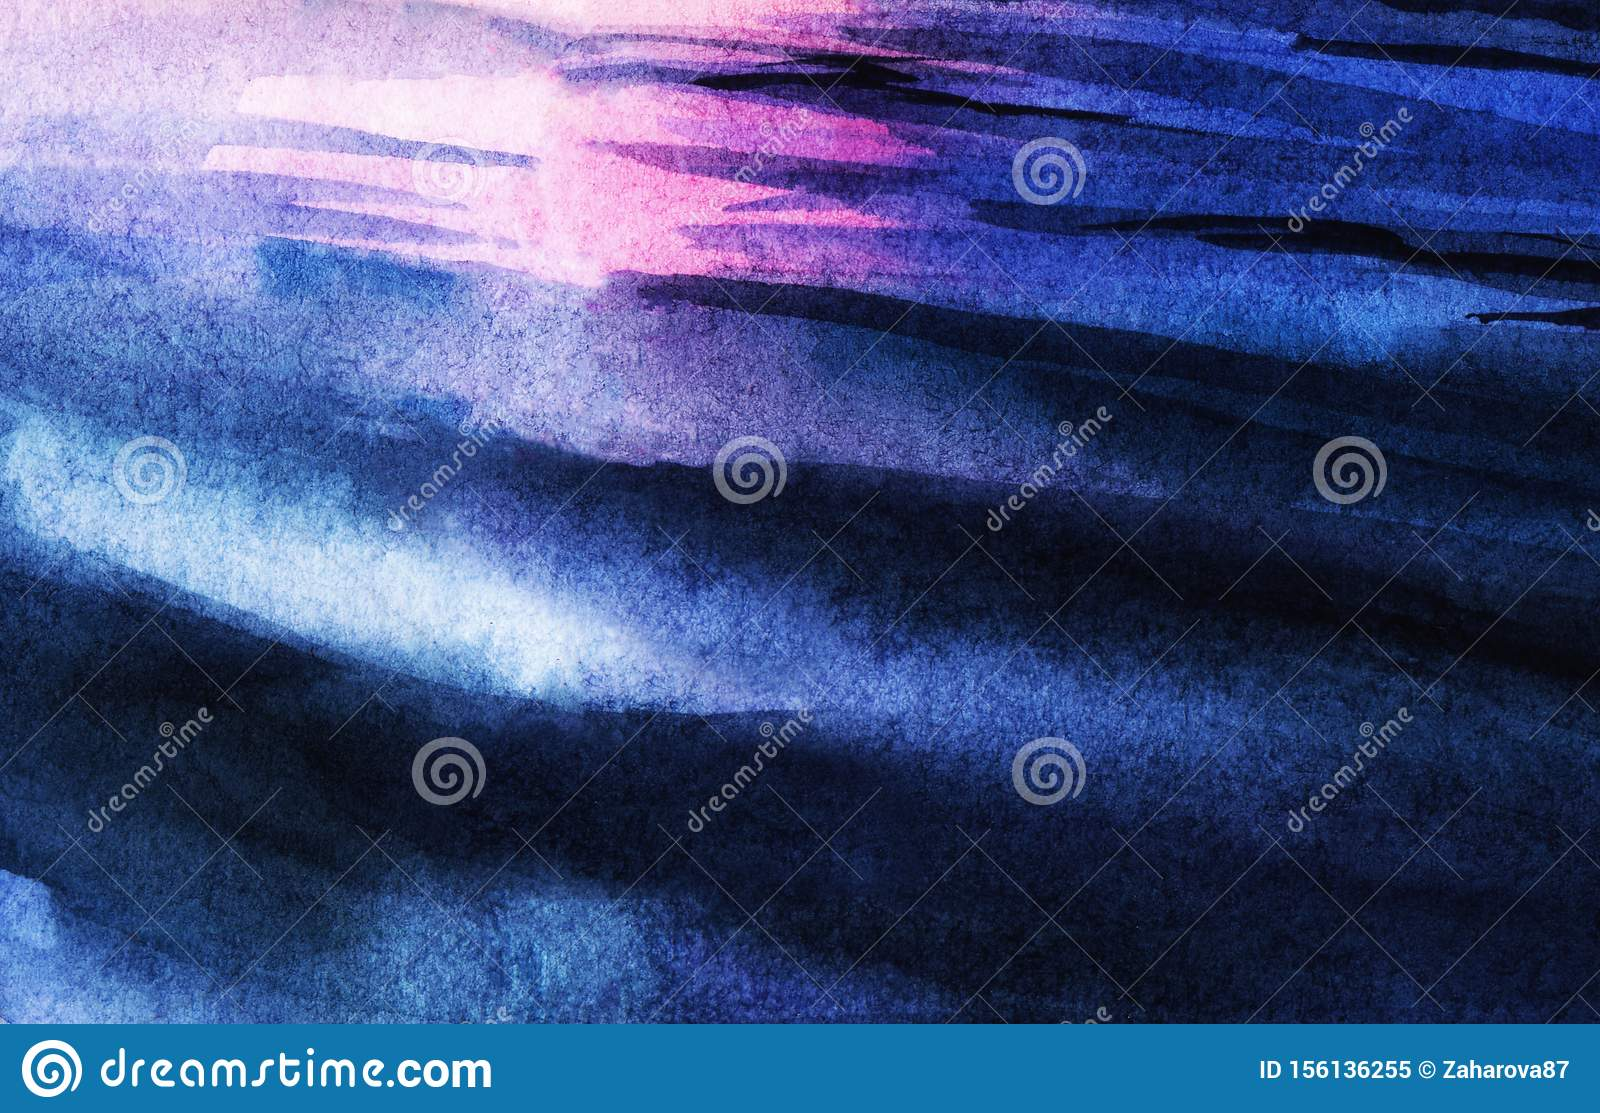 Abstract watercolor background. Blue water ripples of light and dark shades reflecting glare of pink sunset sky. Blurred